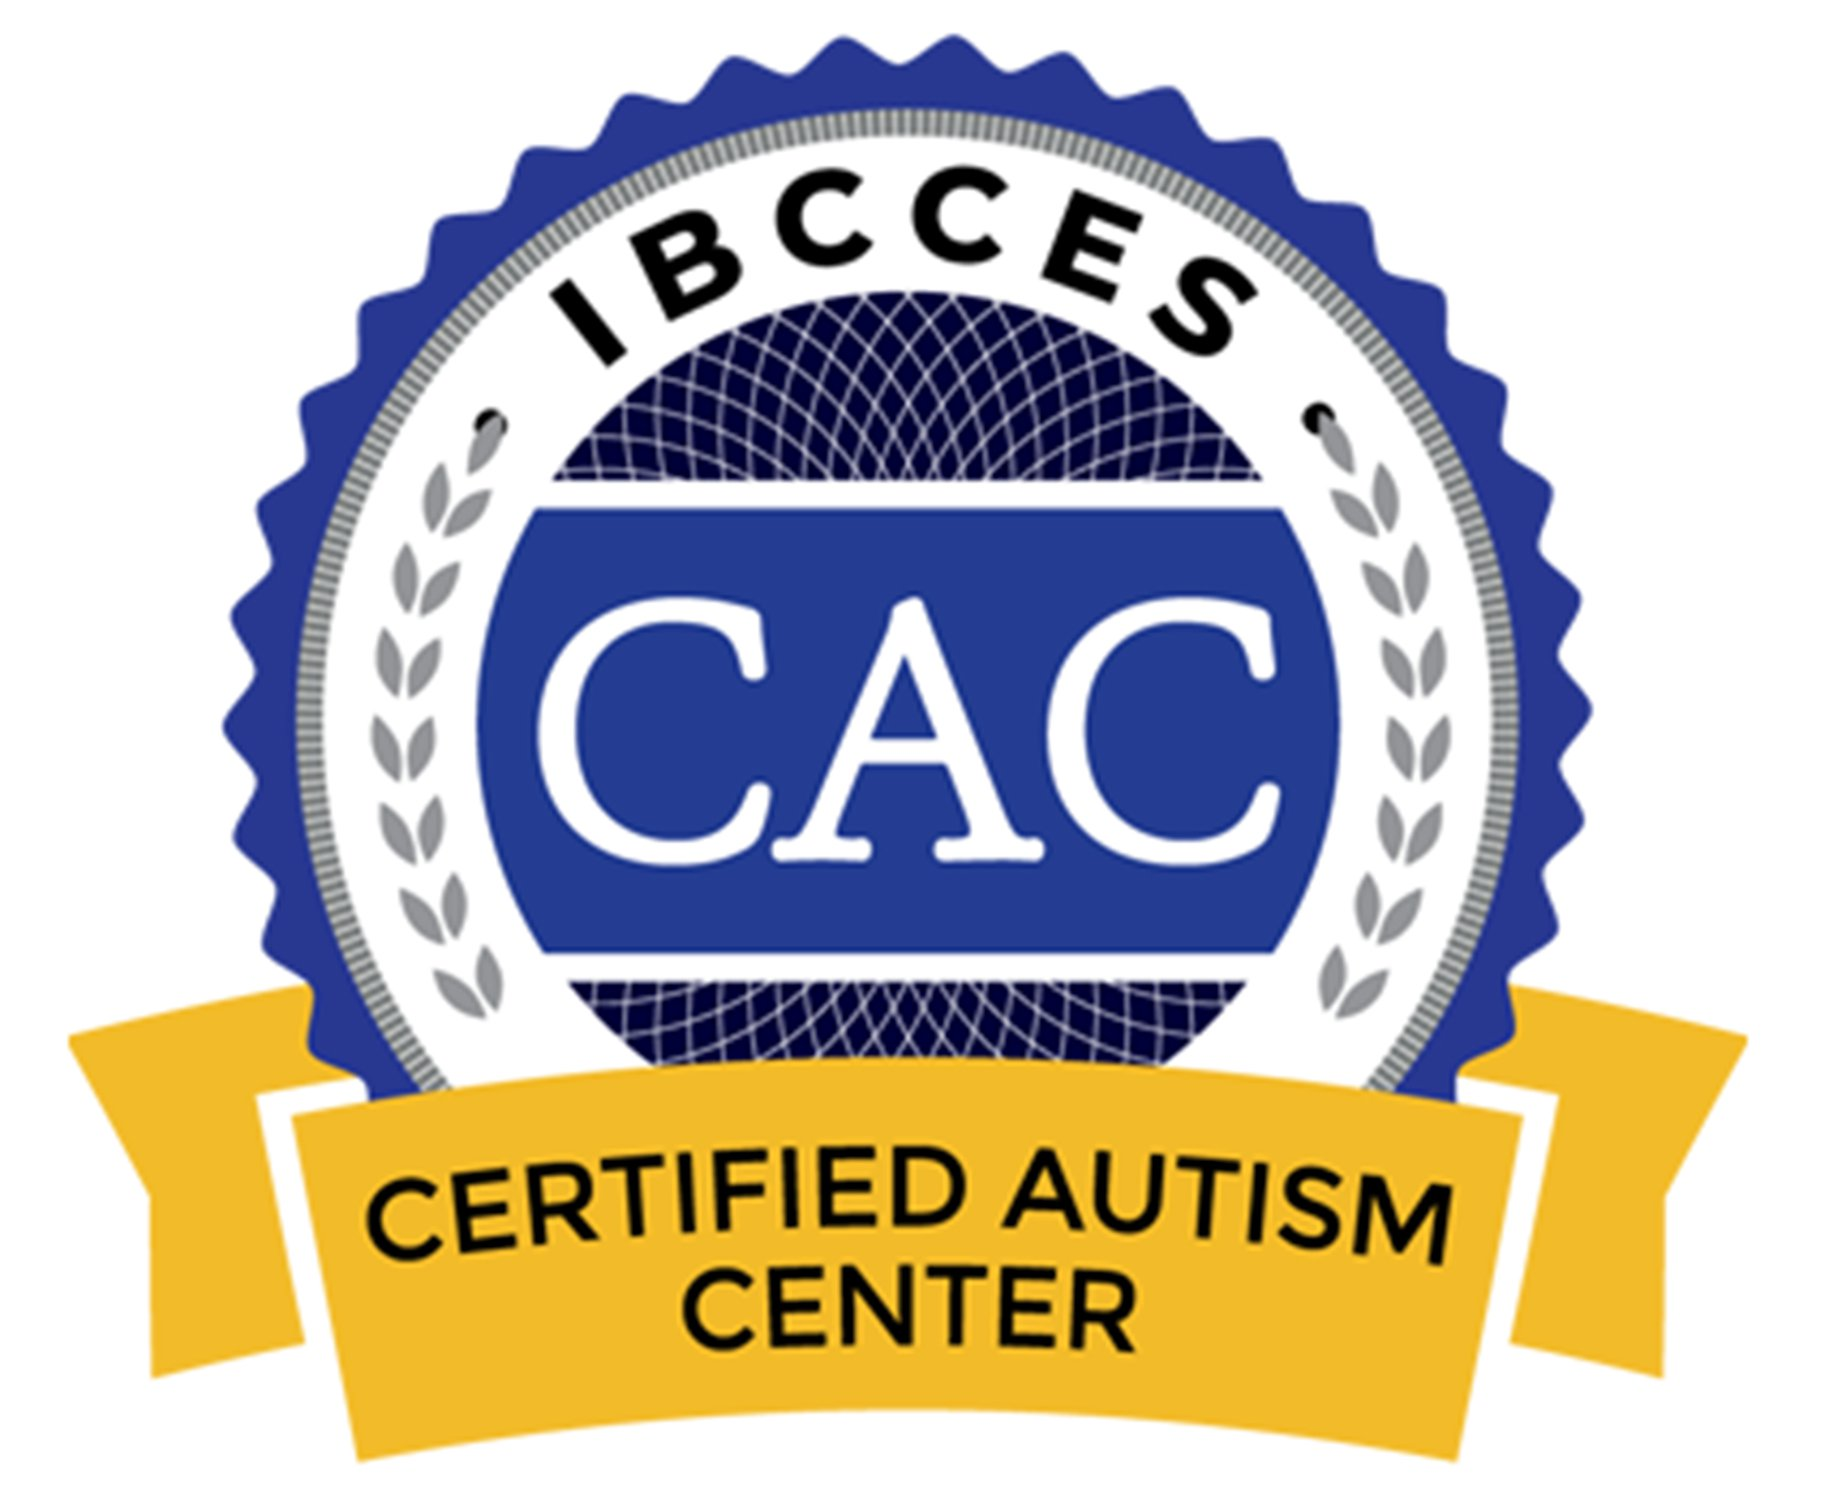 Certified Autism Center Large